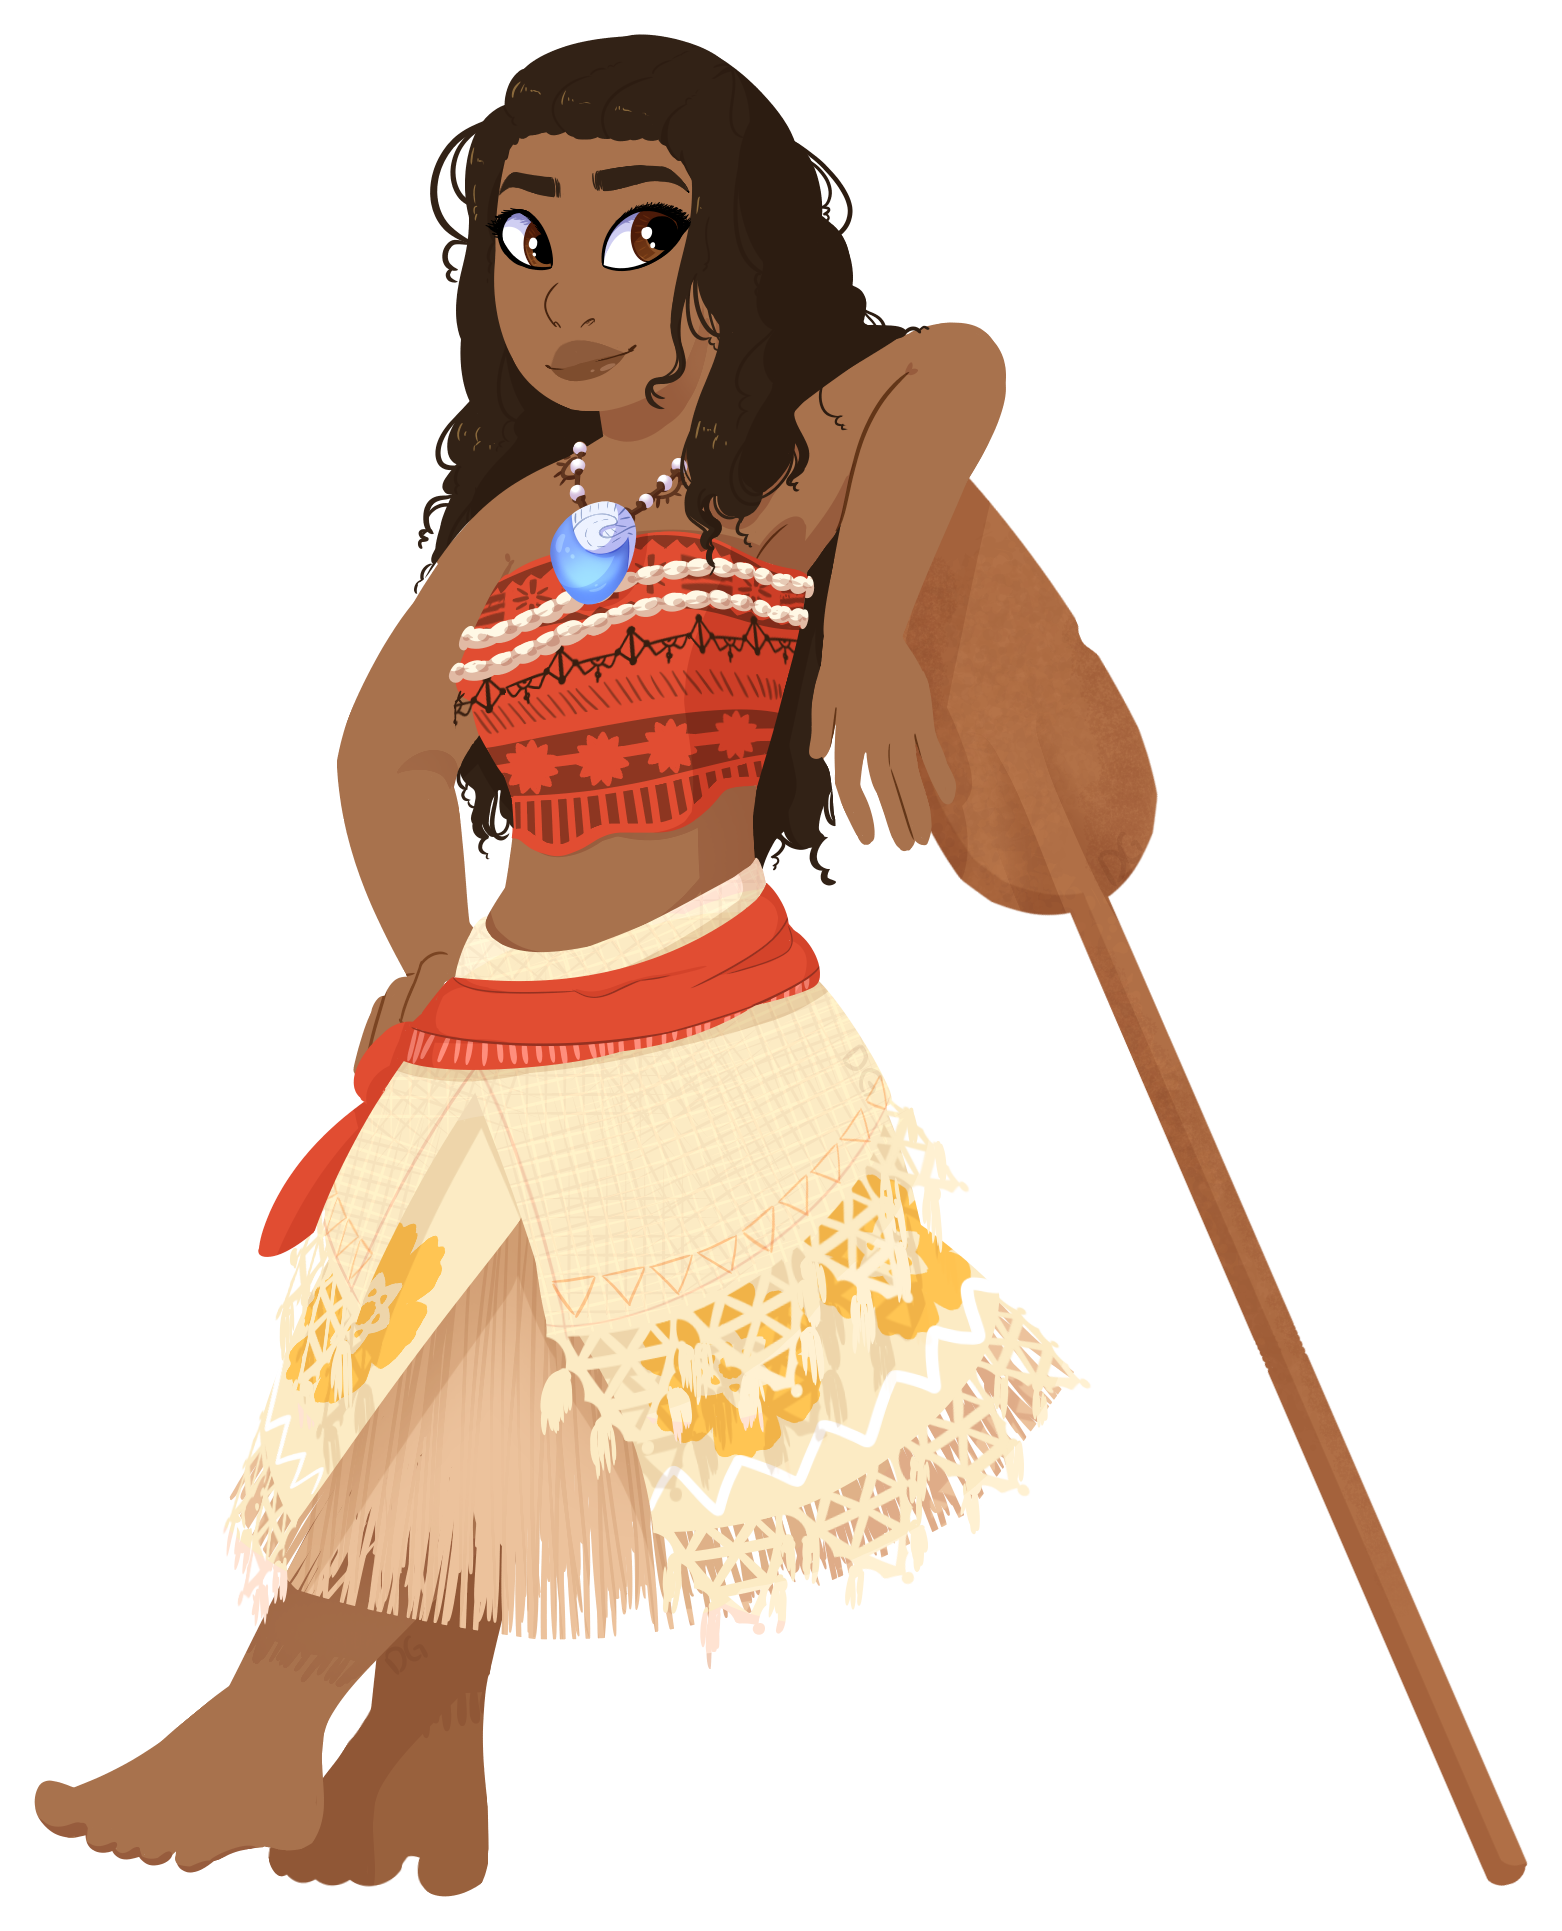 I am moana by. Pua drawing hard clipart free download